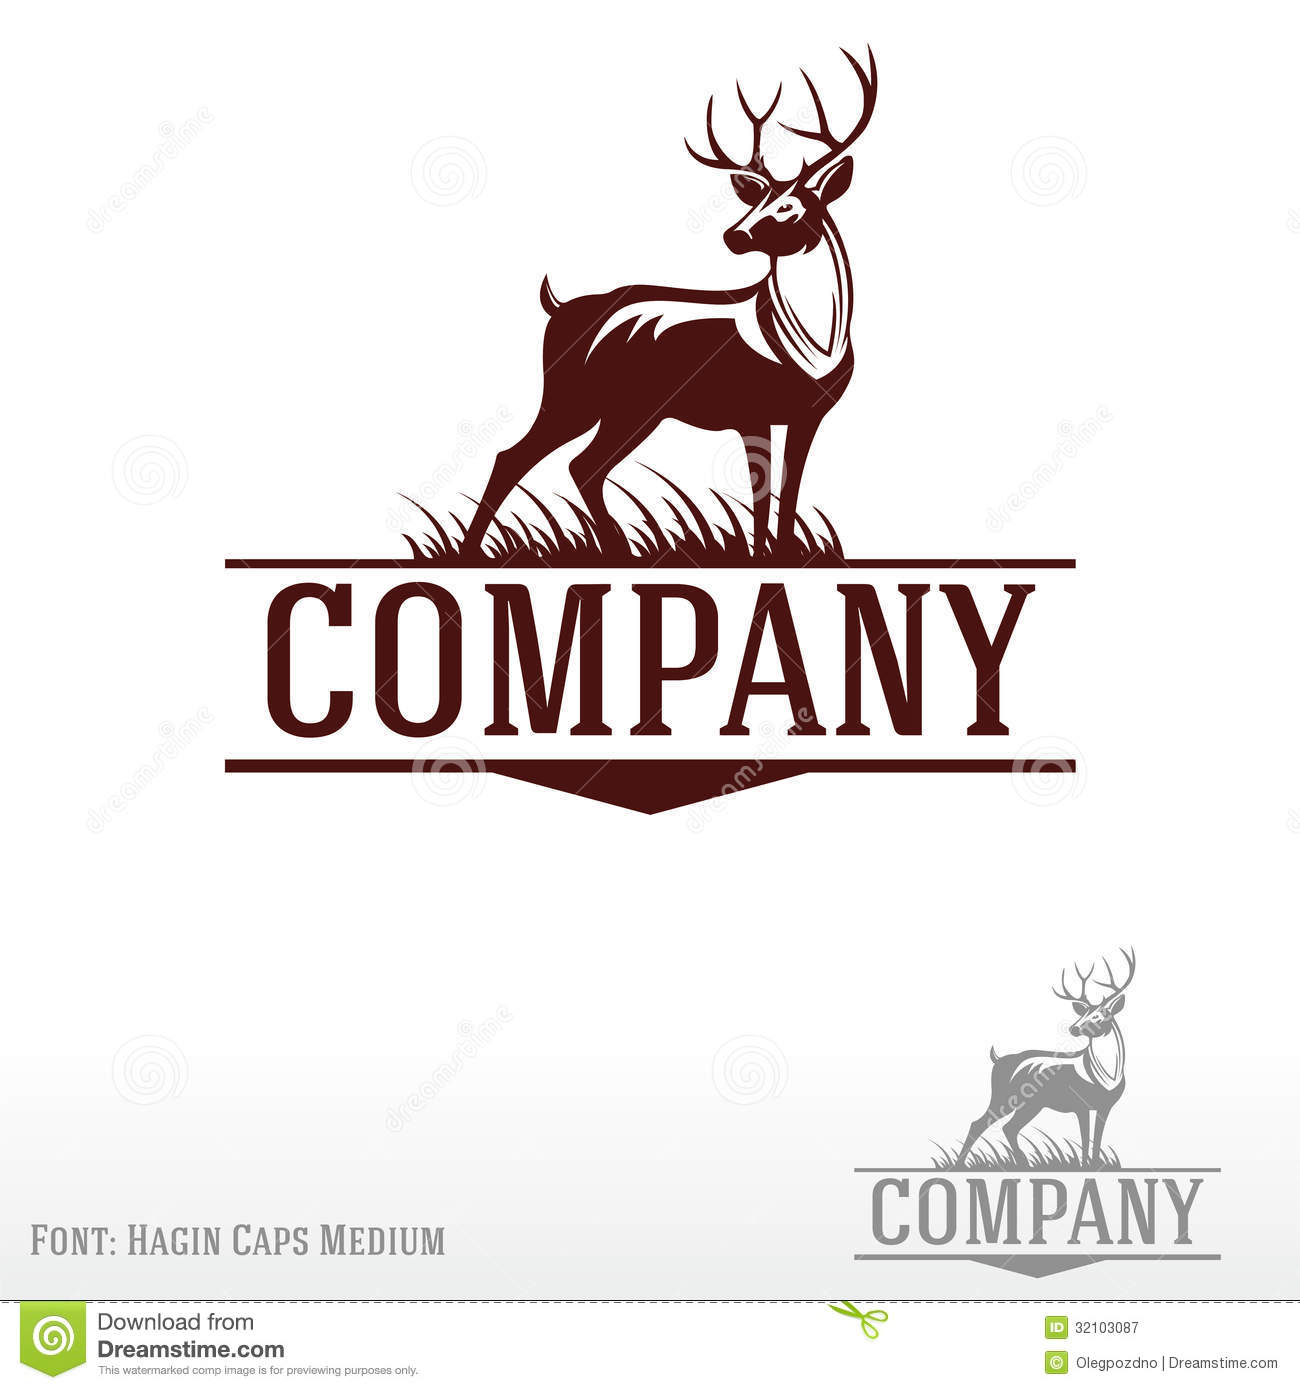 Deer Logo Royalty Free Stock Photography - Image: 32103087